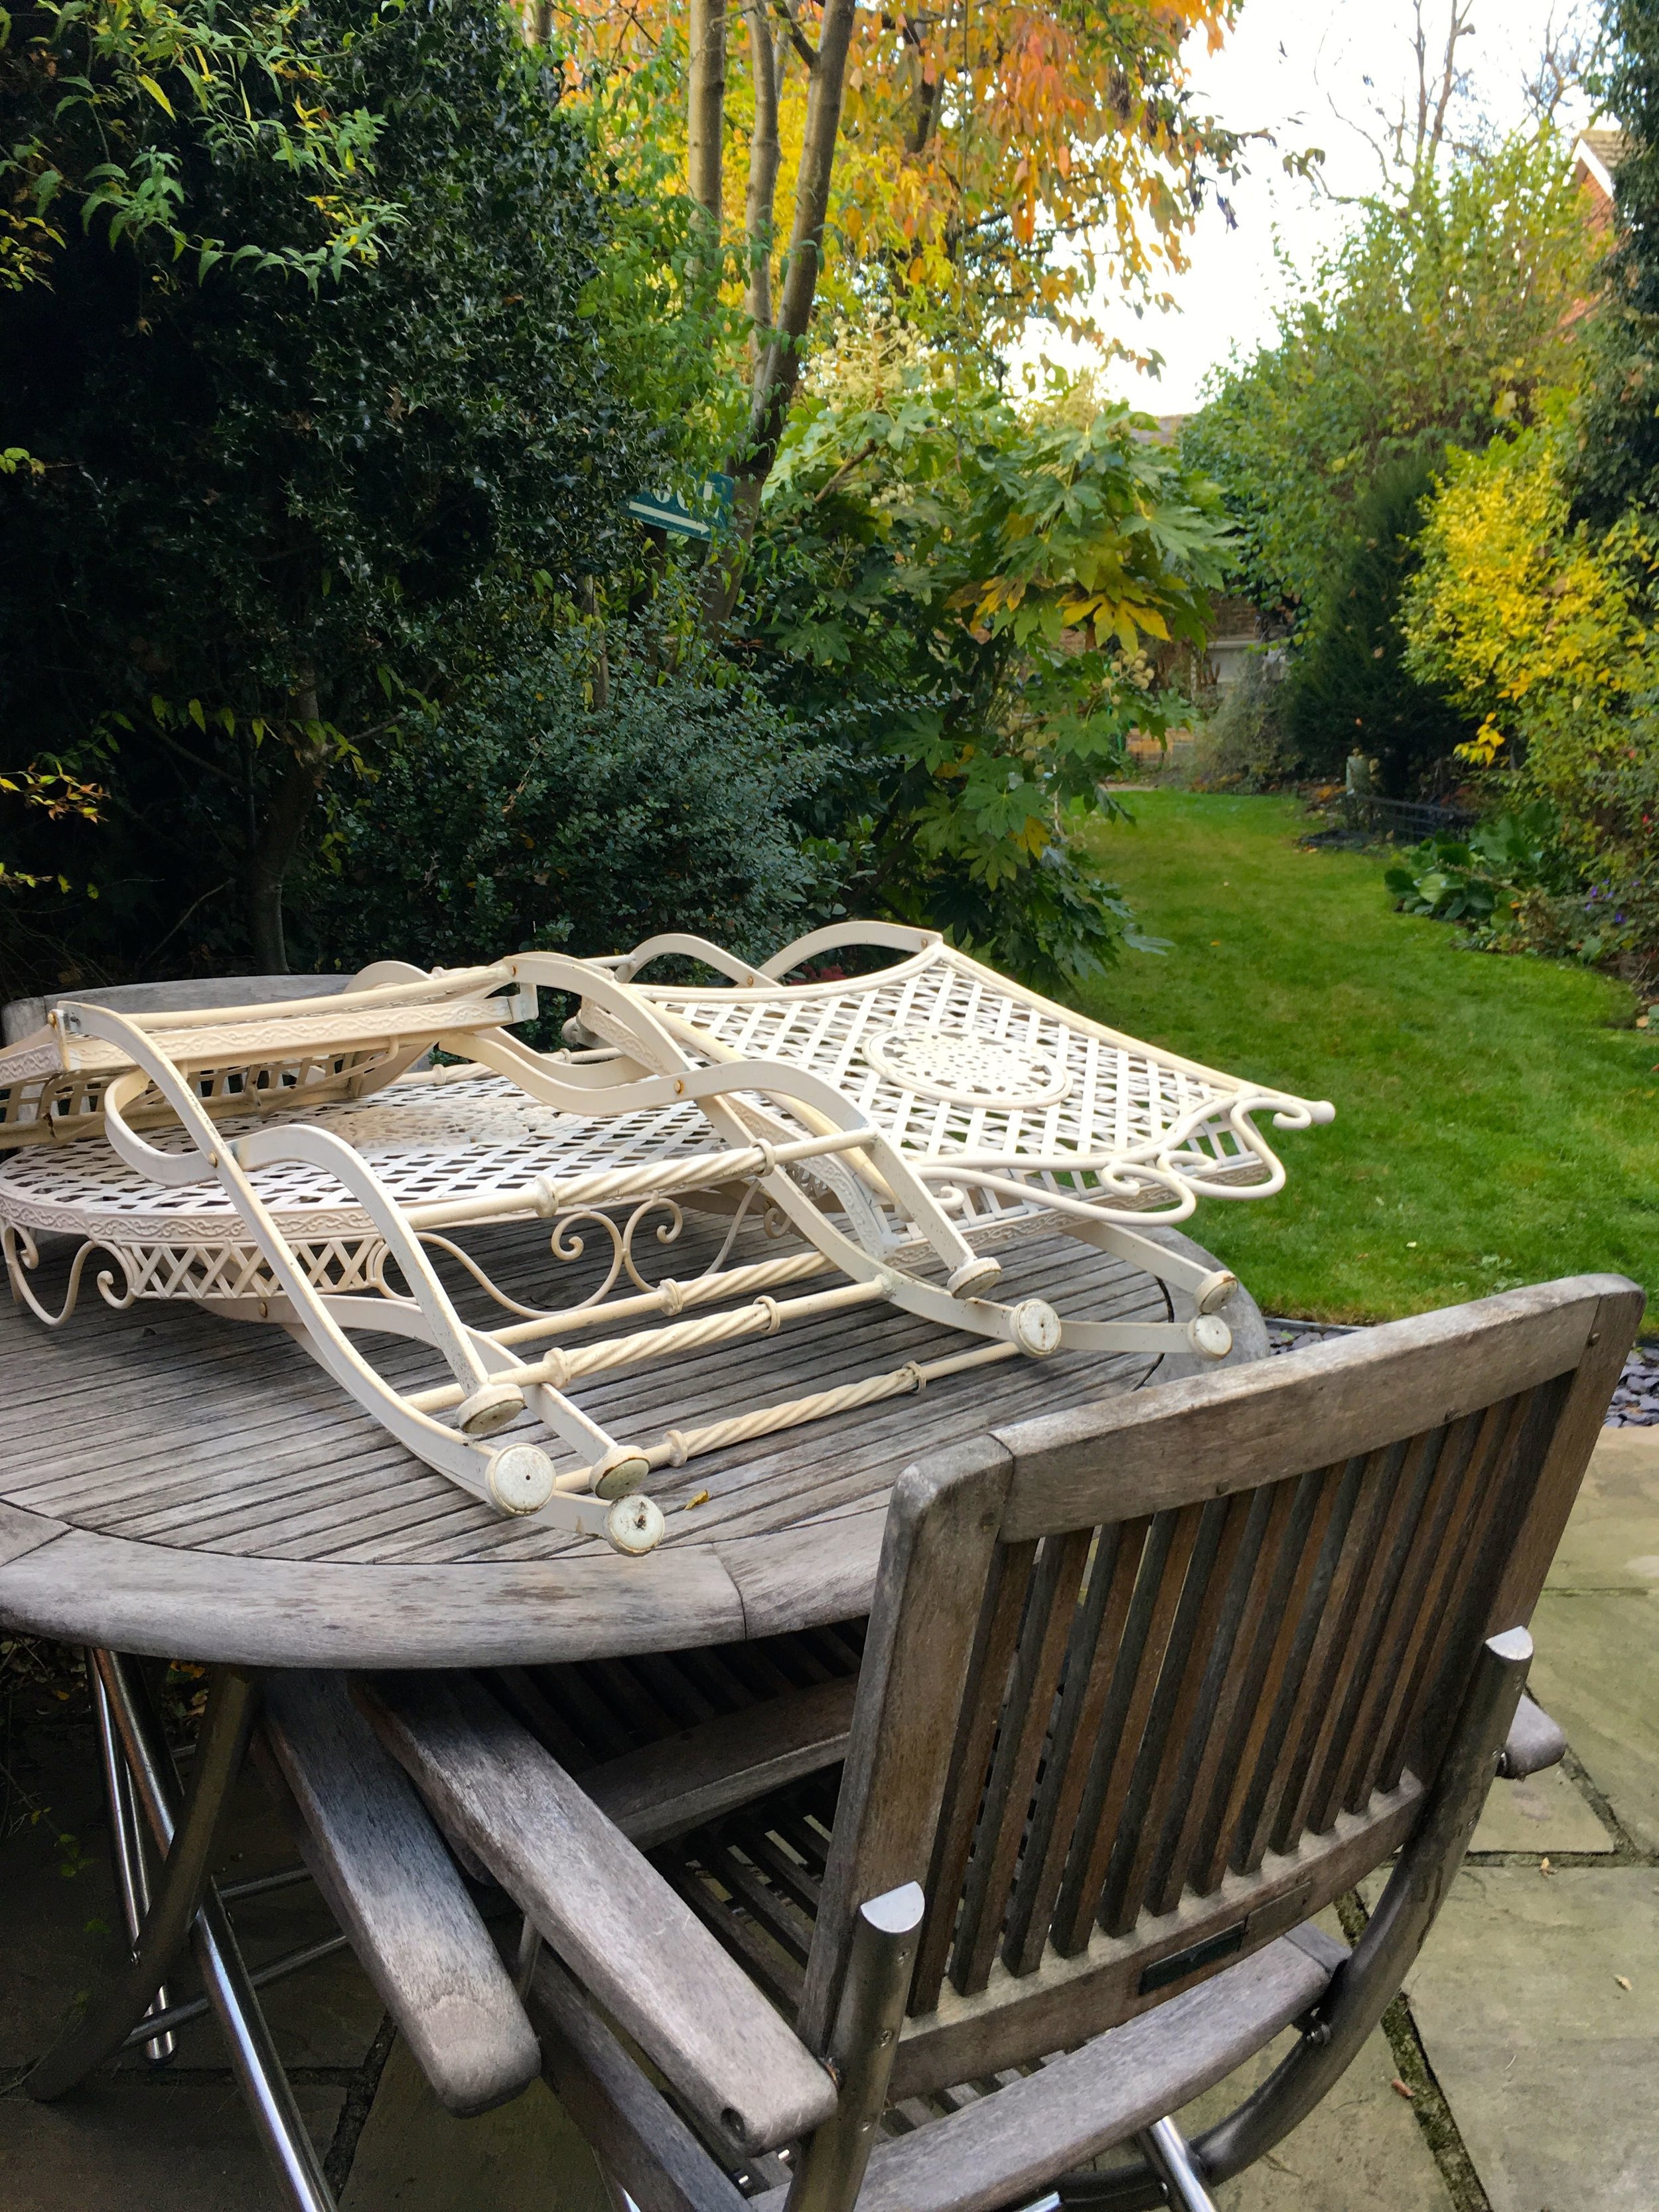 Stacking the garden furniture before covering with a tarpaulin